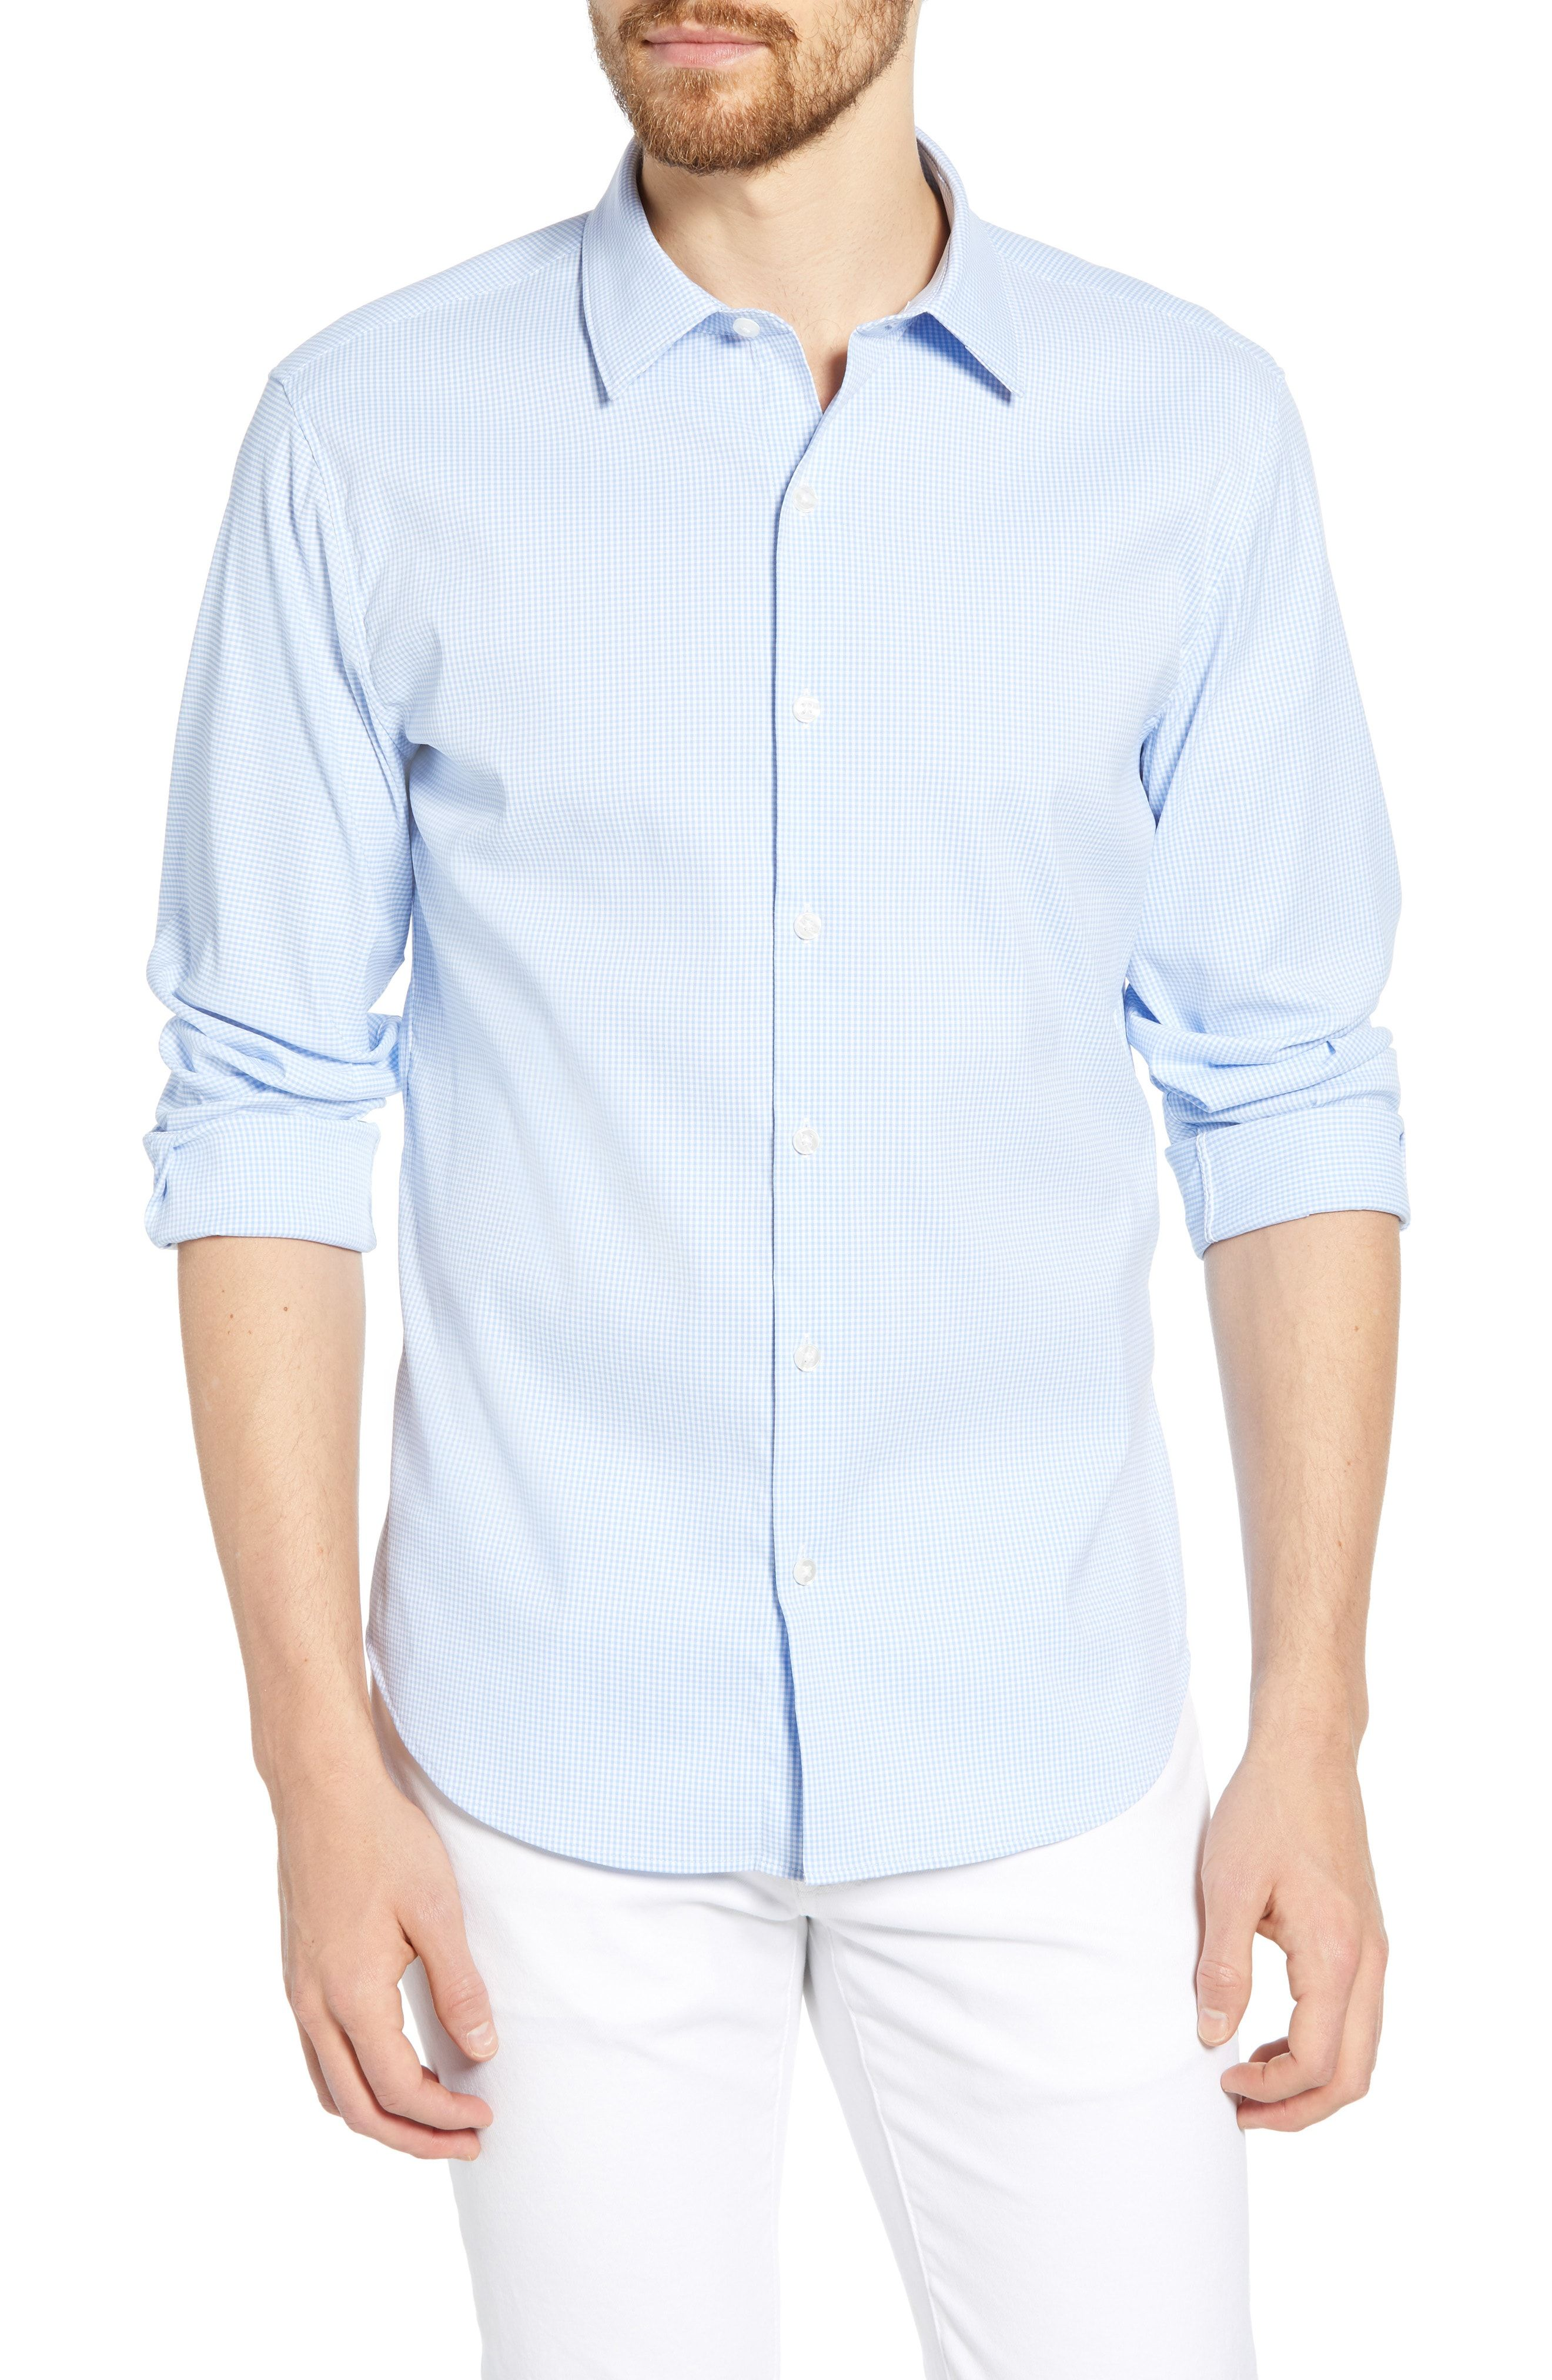 c68d0b73d2 BONOBOS SLIM FIT TECH SPORT SHIRT.  bonobos  cloth